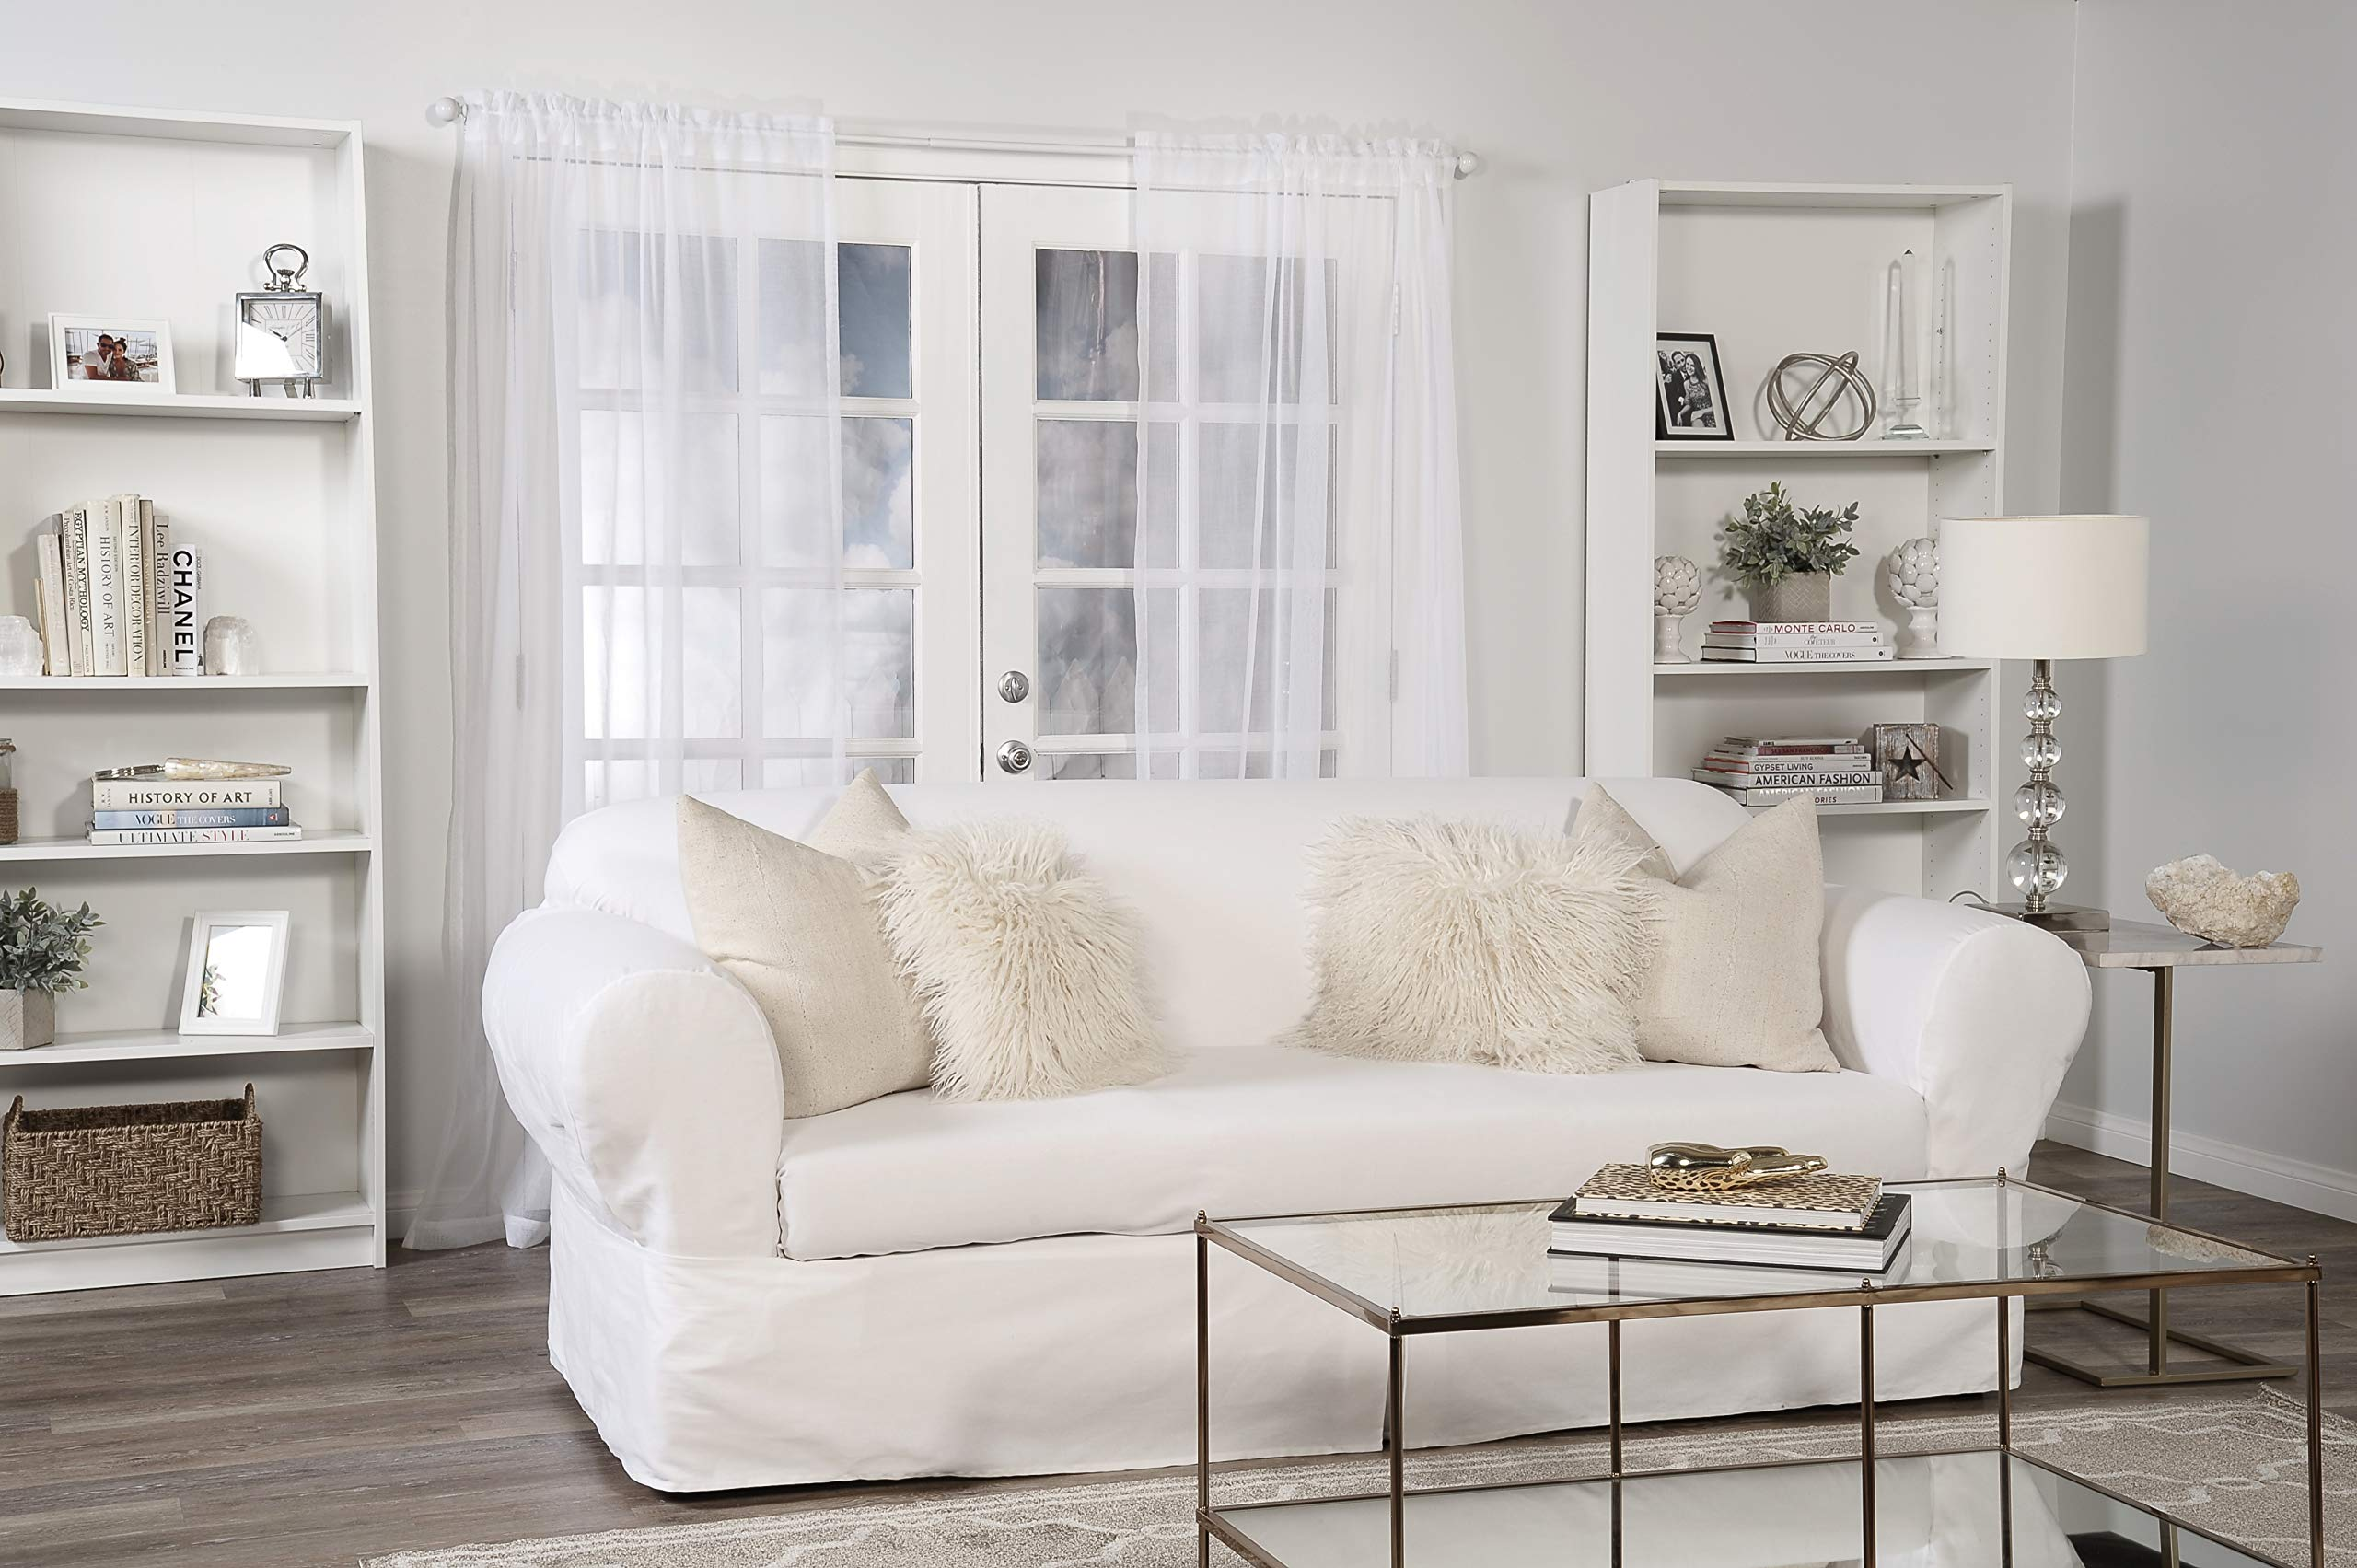 Classic Slipcovers WDEN2PC10WHT Sofa slipcover, 2 Piece, Separate Cushion Cover, Pure White by Classic Slipcovers